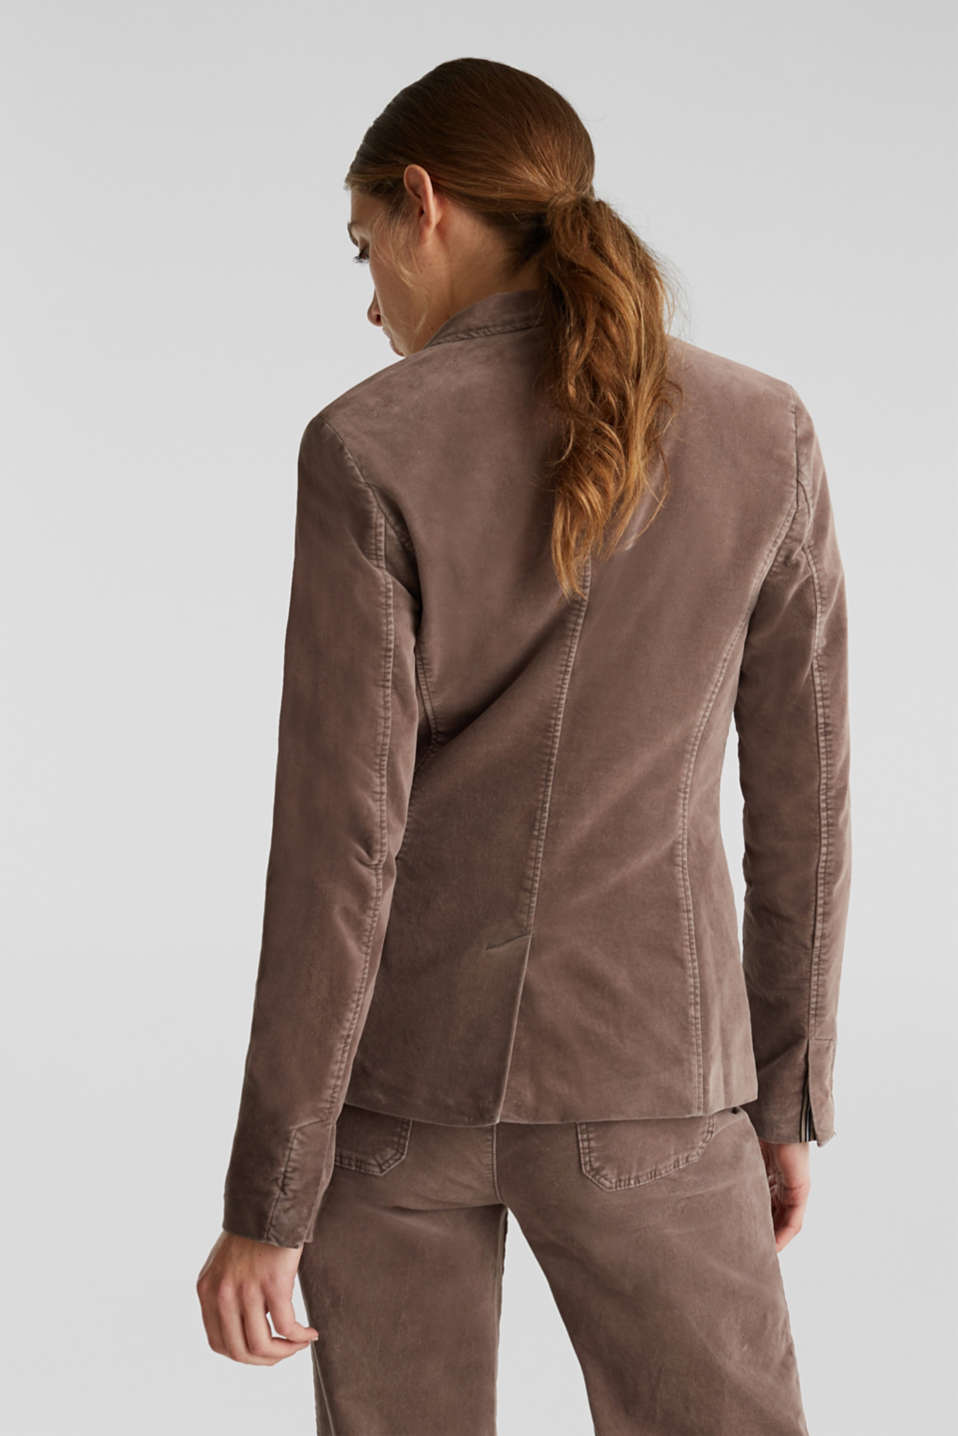 Velvet blazer with stretch for comfort, LIGHT TAUPE, detail image number 3